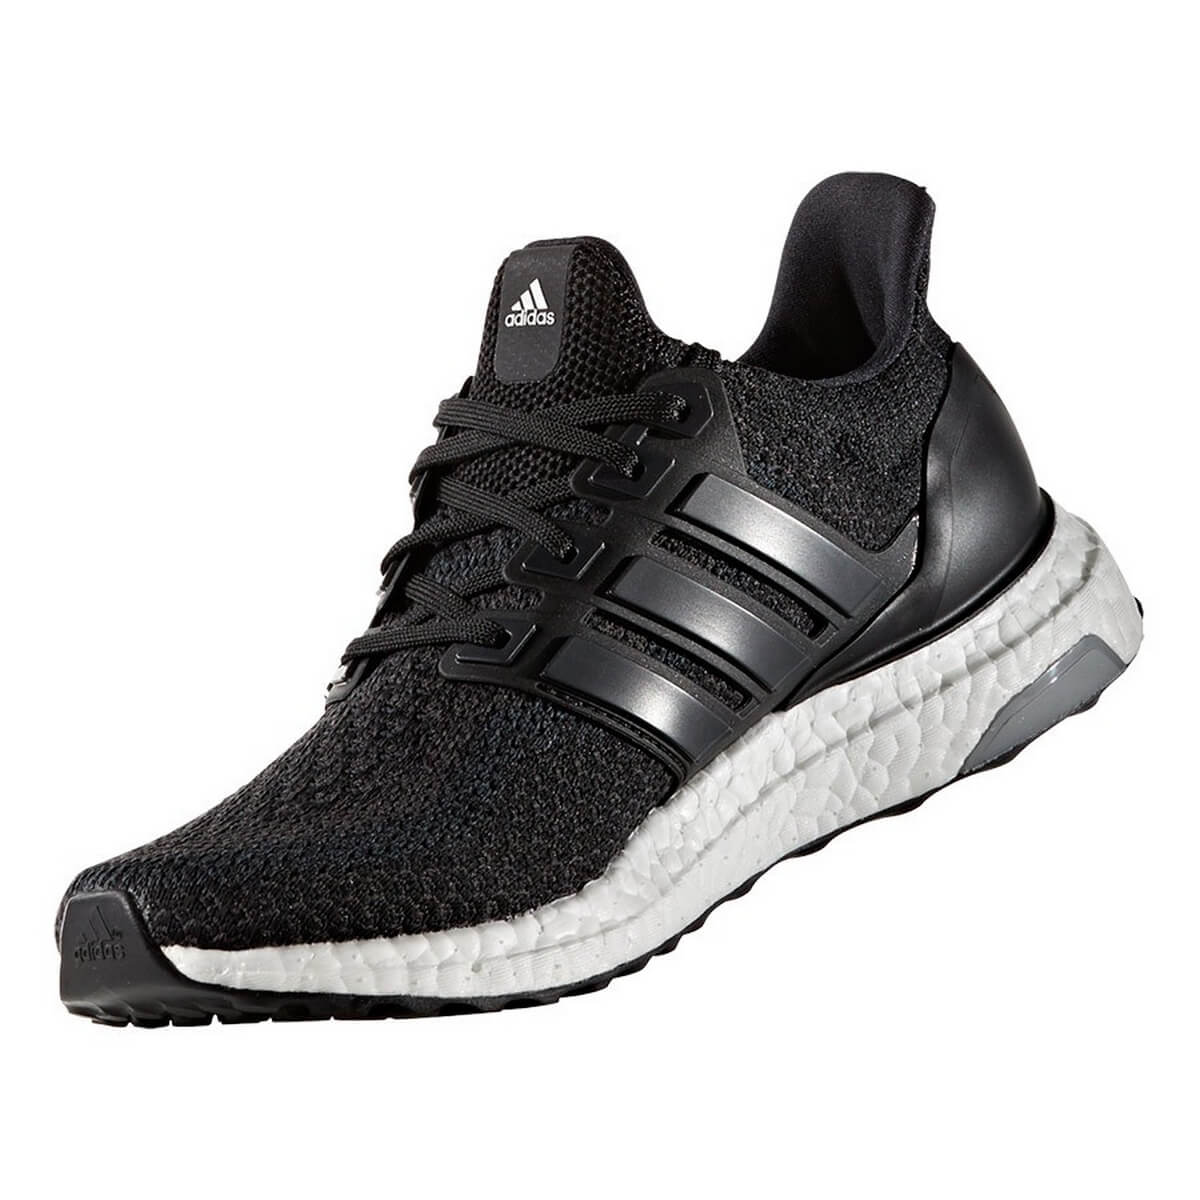 aff5935d31fd7 Black Adidas Iniki Runner Boost For Sale Adipower S Boost 2